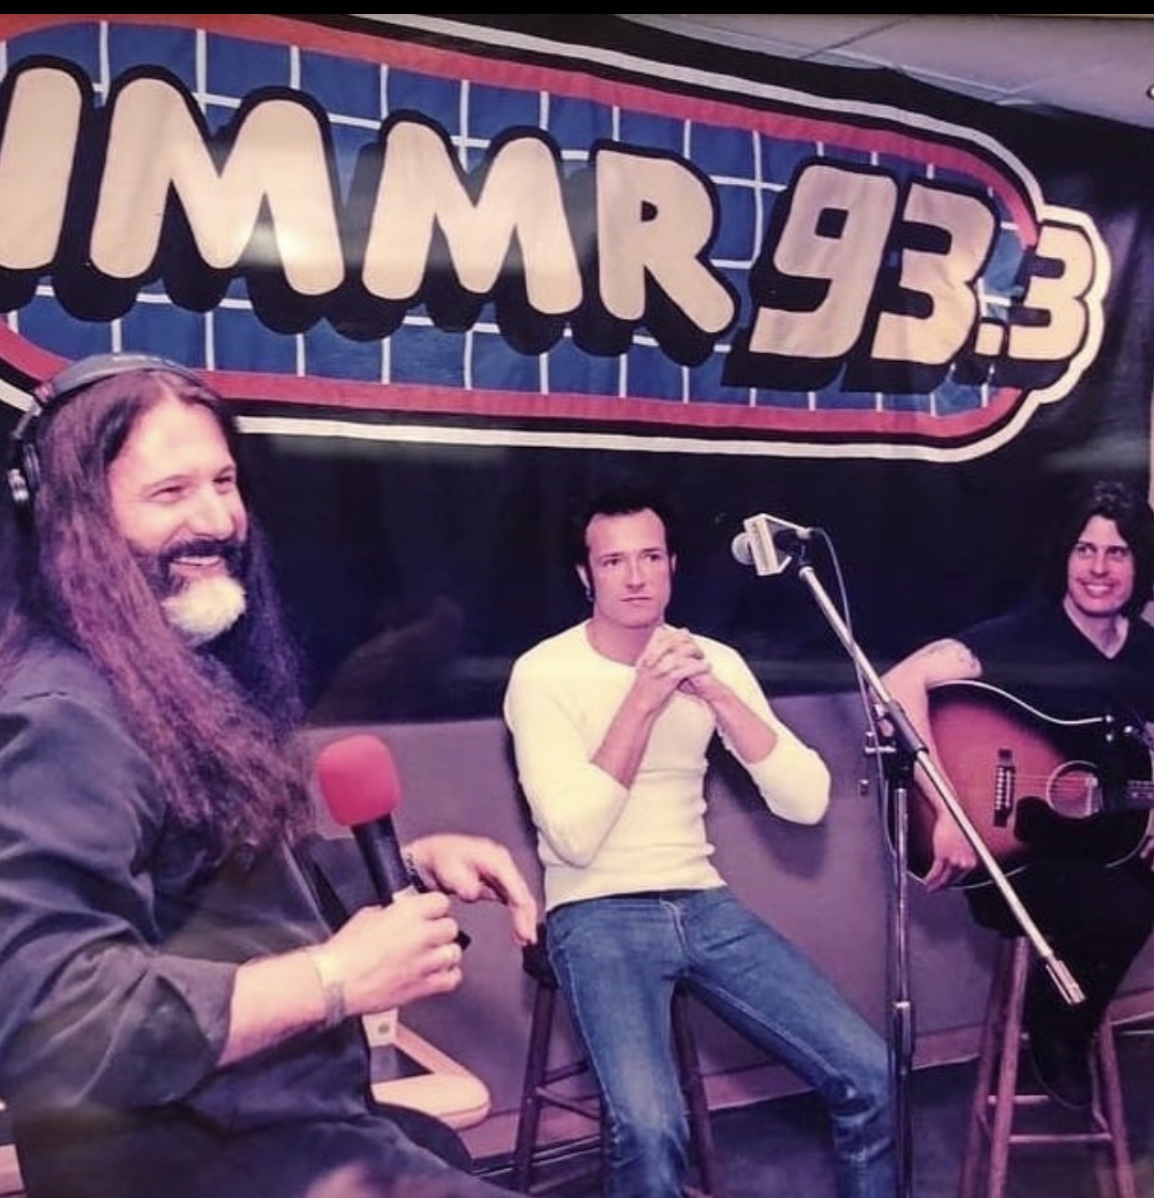 A fun chat with a great friend of @933WMMR, Dean DeLeo of @STPBand, ahead of their @nugsnet 'Core' PPV live show tonight at 8pm EST on https://t.co/IHHDnXMFjH. 'Core' won a Grammy in 94, hear about that, a photo from the first time we met and more here: https://t.co/UNBBgdUvwd https://t.co/ICerBVPHs3